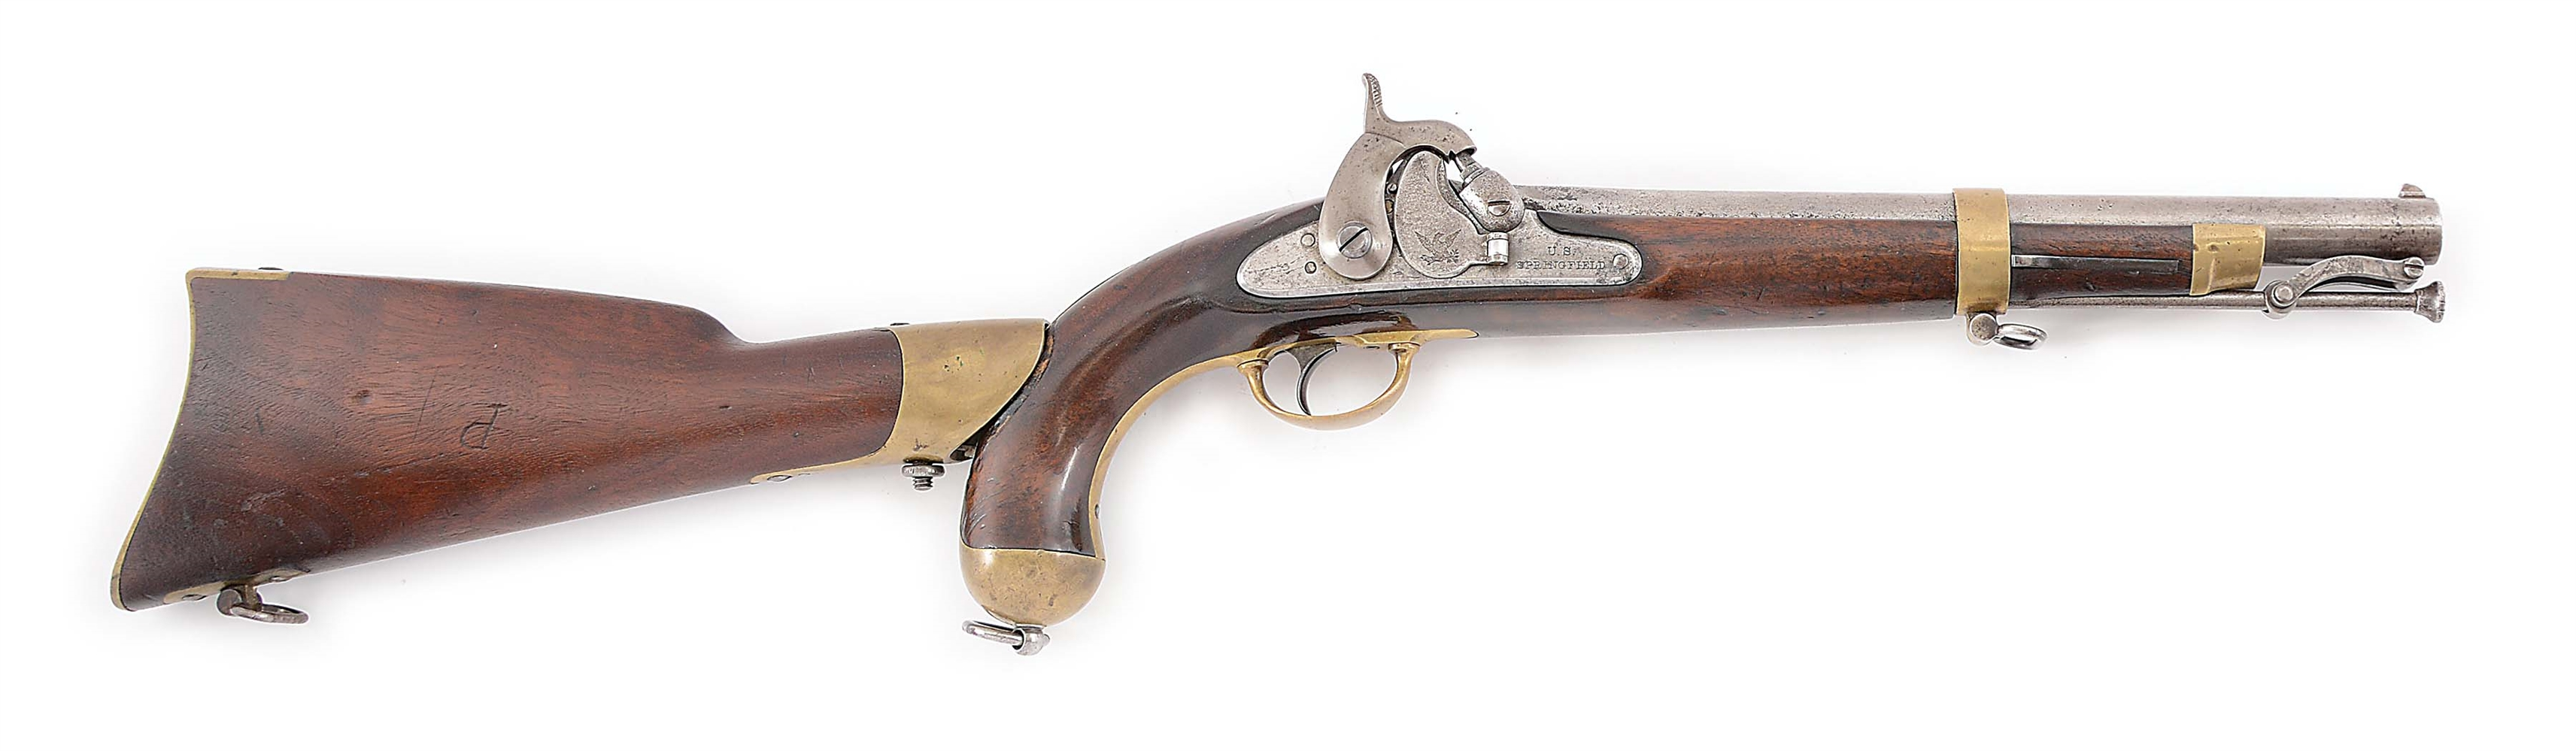 "(A) A SPRINGFIELD MODEL 1855 SINGLE SHOT MARTIAL PISTOL WITH SHOULDER STOCK AND 12"" RIFLED BARREL, DATED 1855. FURTHER STAMPED ON TOP FLAT SC FOR SOUTH CAROLINA, INDICATING POSSIBLE CONFEDERATE USE."